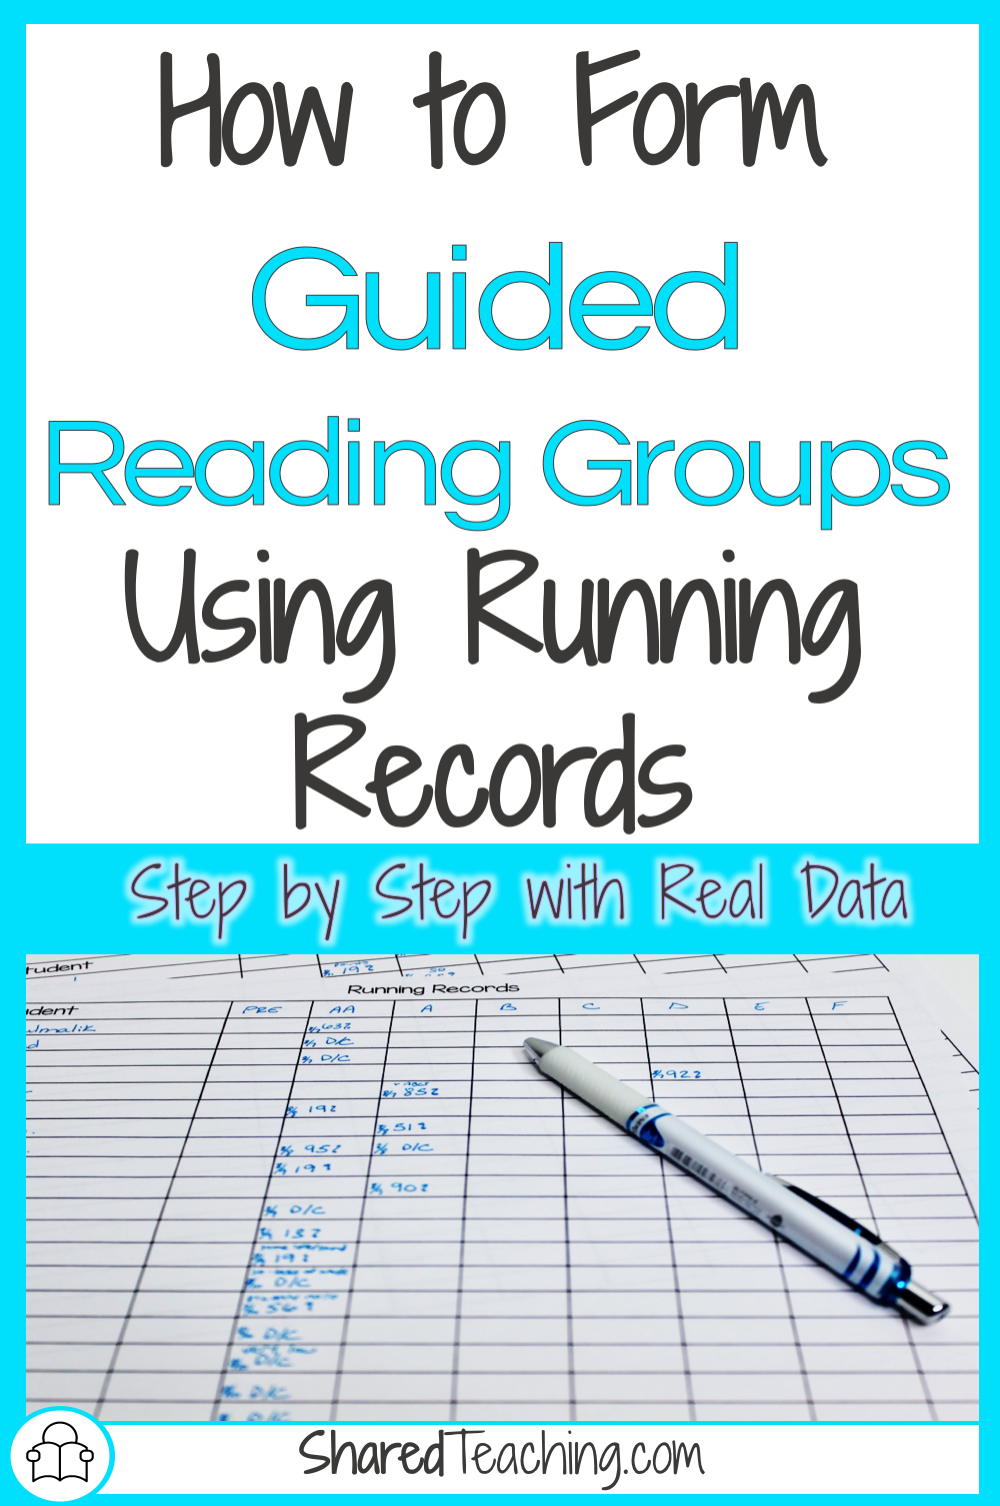 Want to learn how to use your data to form guided reading groups? Check out this post for step by step instruction using real classroom data to analyze and create small groups.